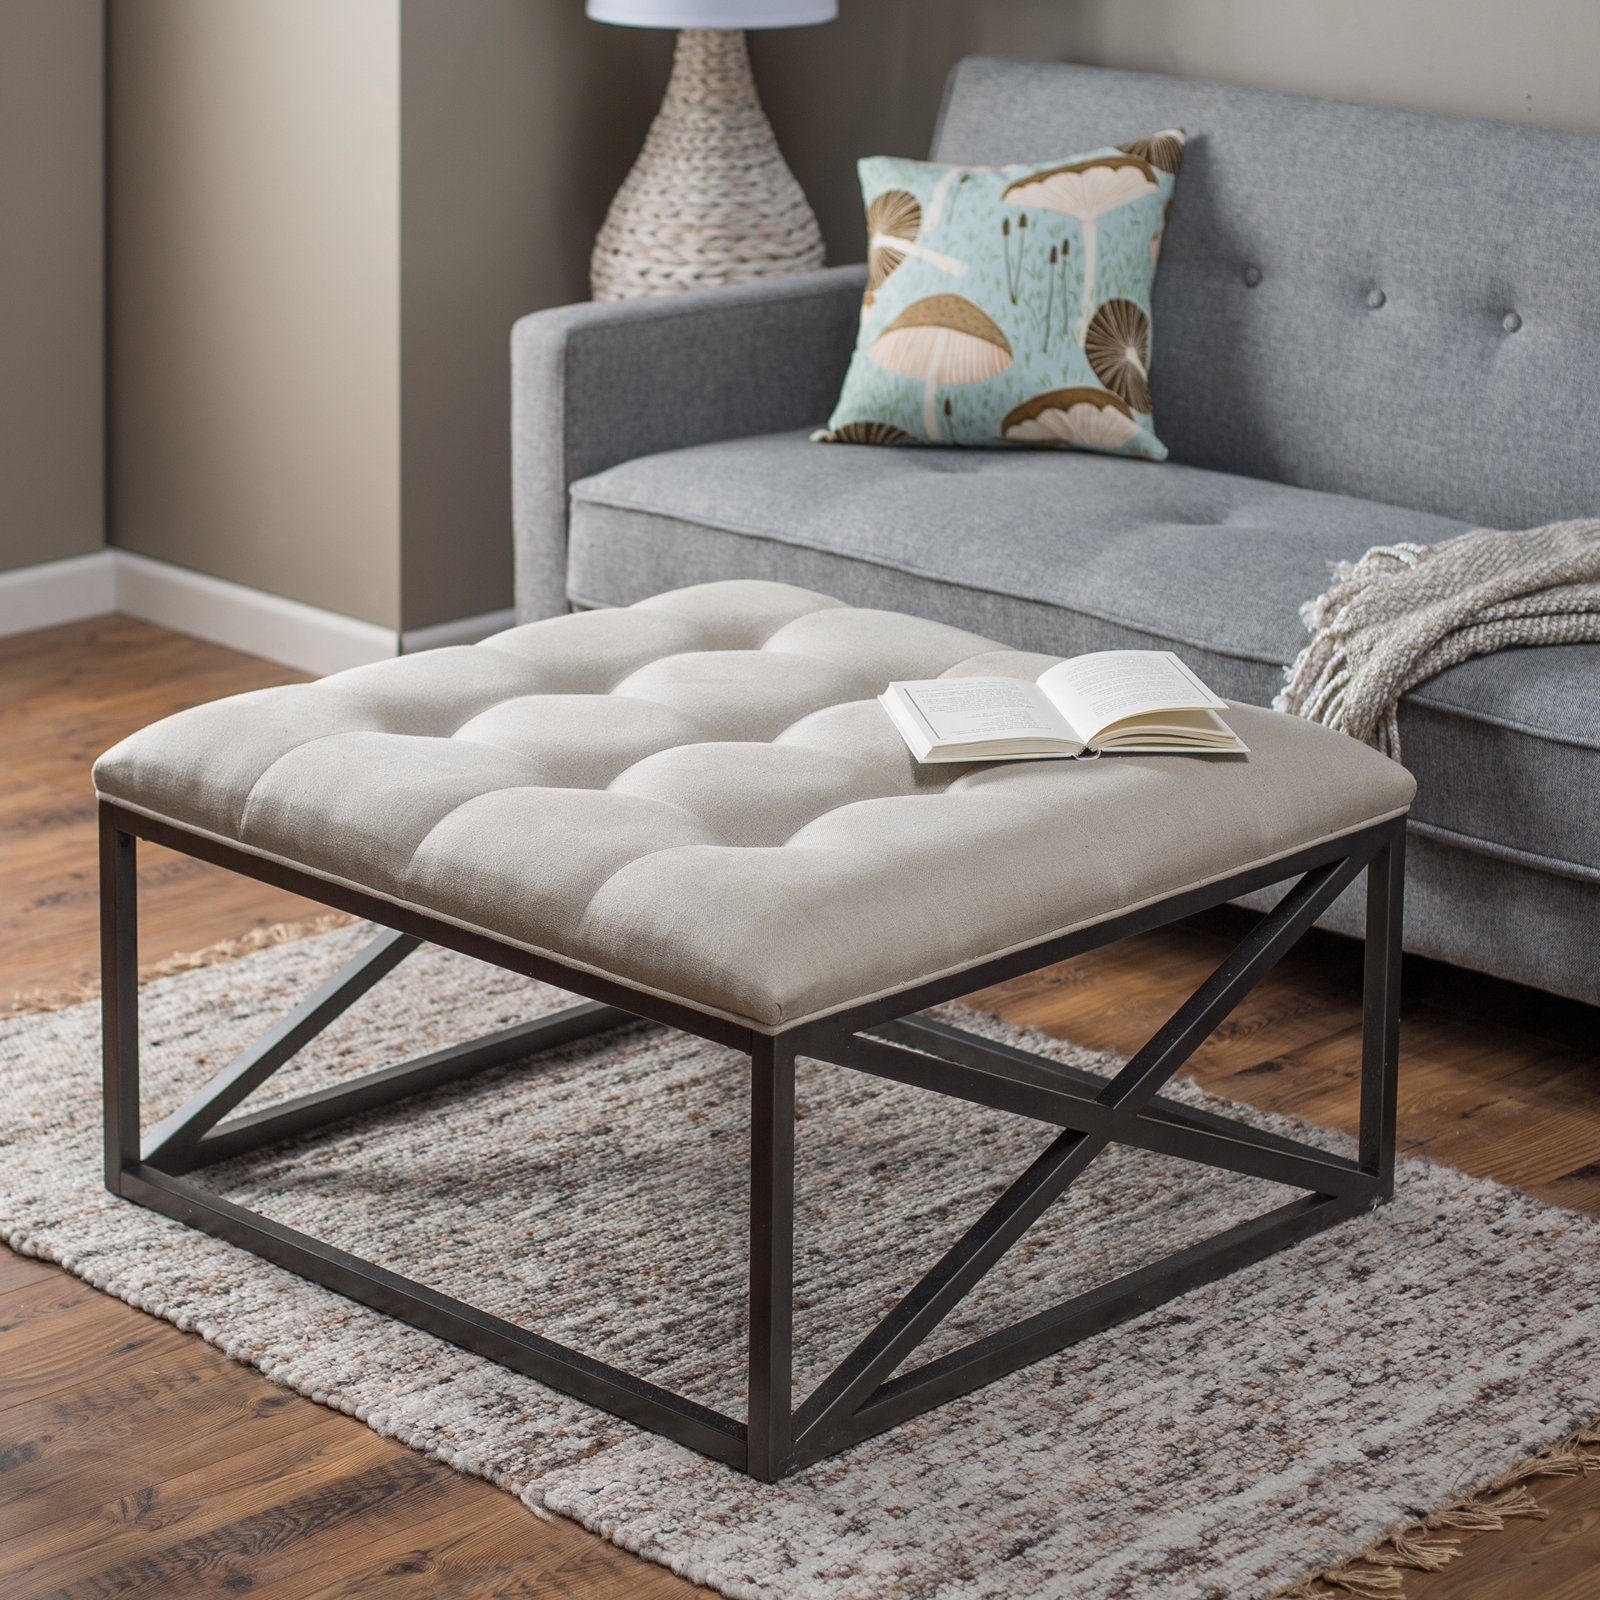 Belham Living Grayson Tufted Coffee Table Ottoman | Hayneedle inside Button Tufted Coffee Tables (Image 3 of 30)